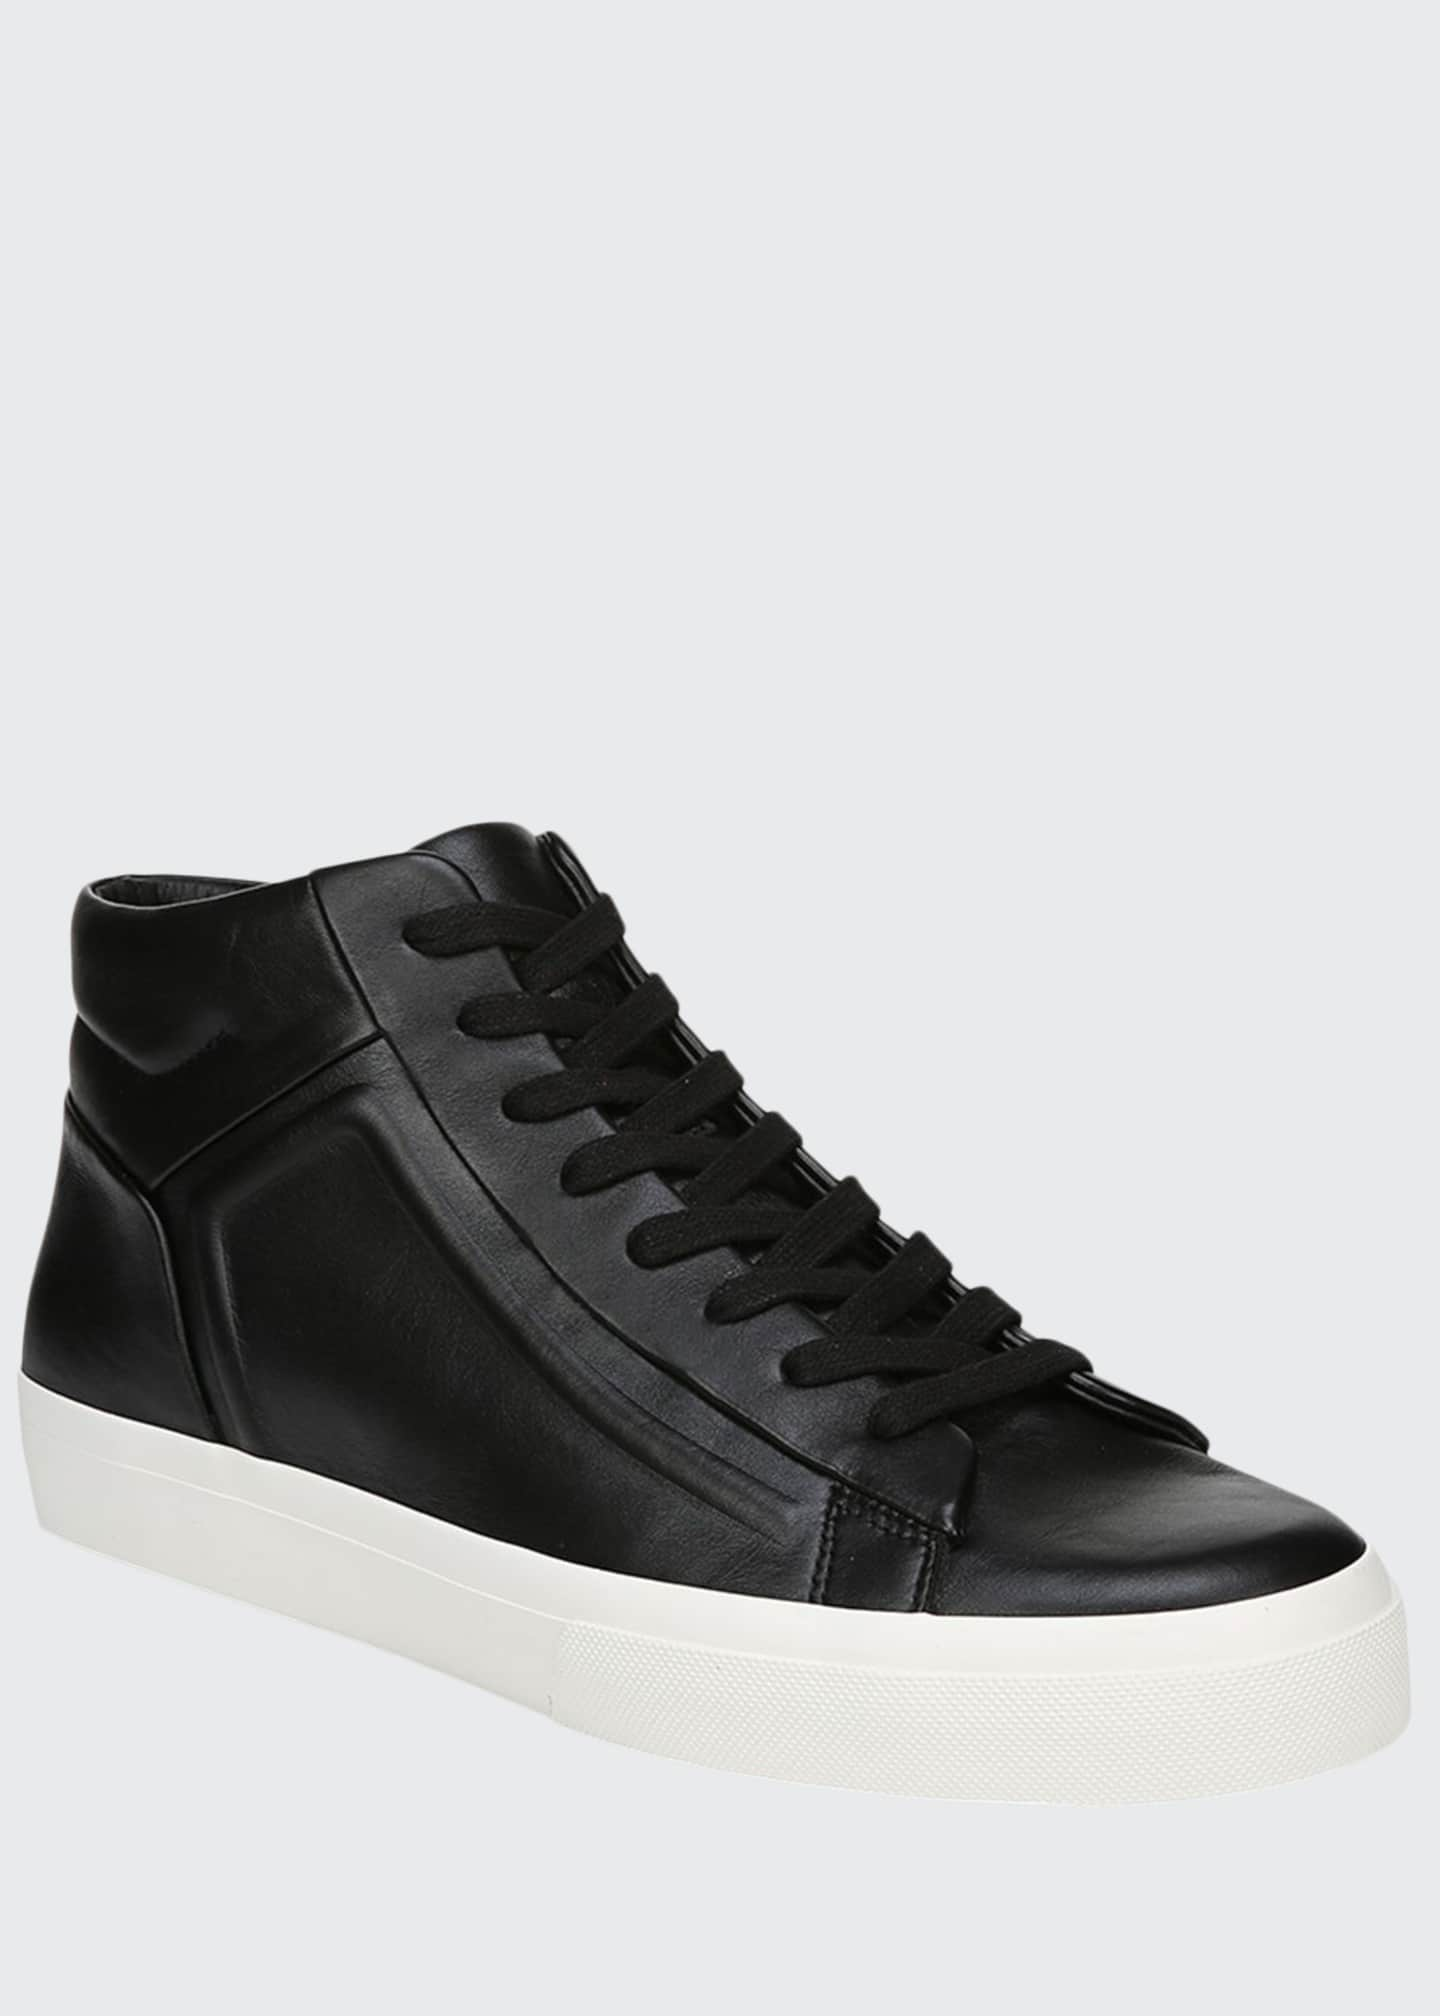 Image 1 of 5: Men's Fynn Glove Leather Low-Top Sneakers